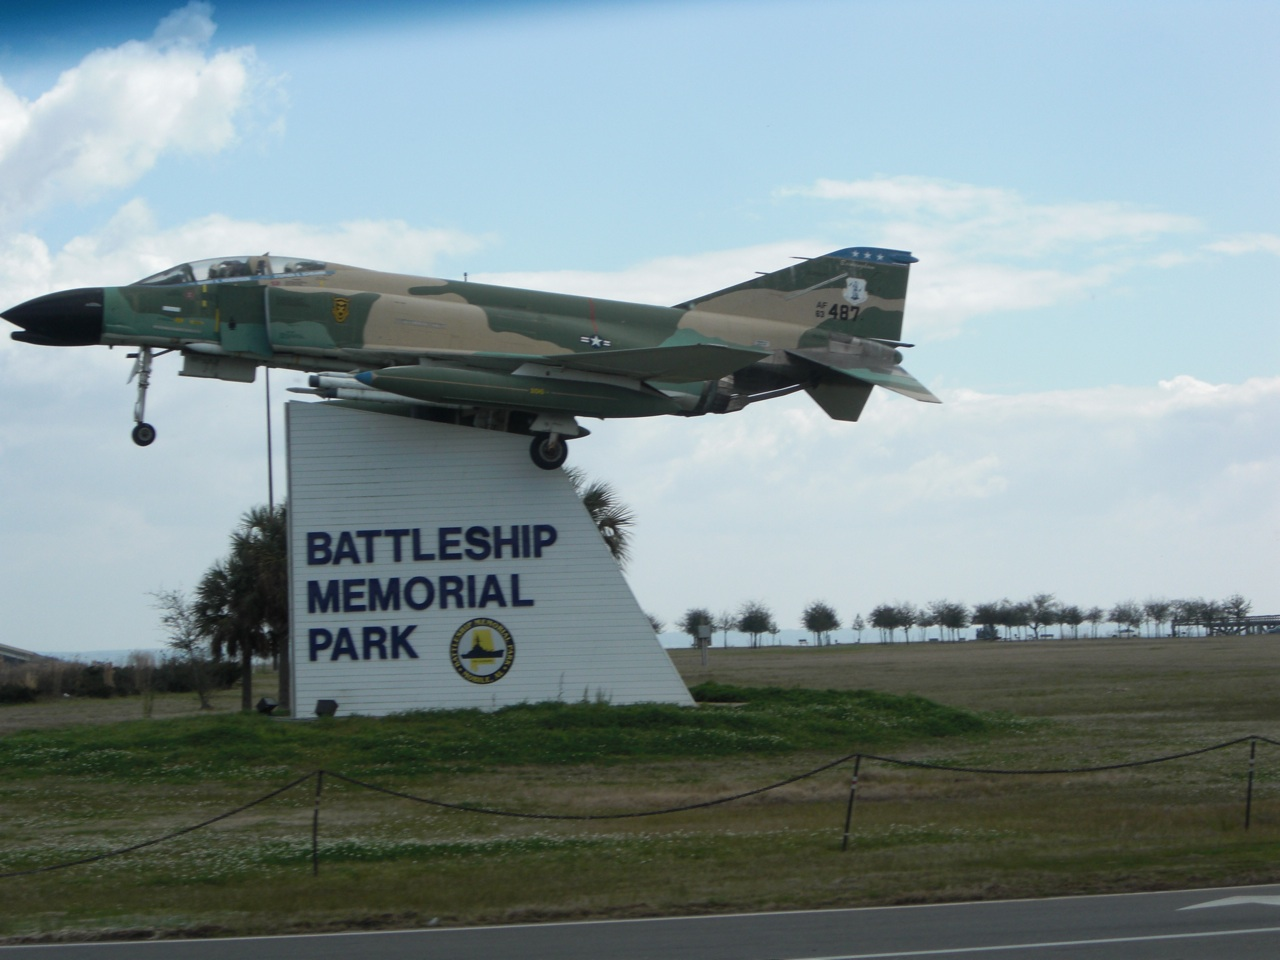 The Entrance To Battleship Memorial Park in Mobile, Alabama